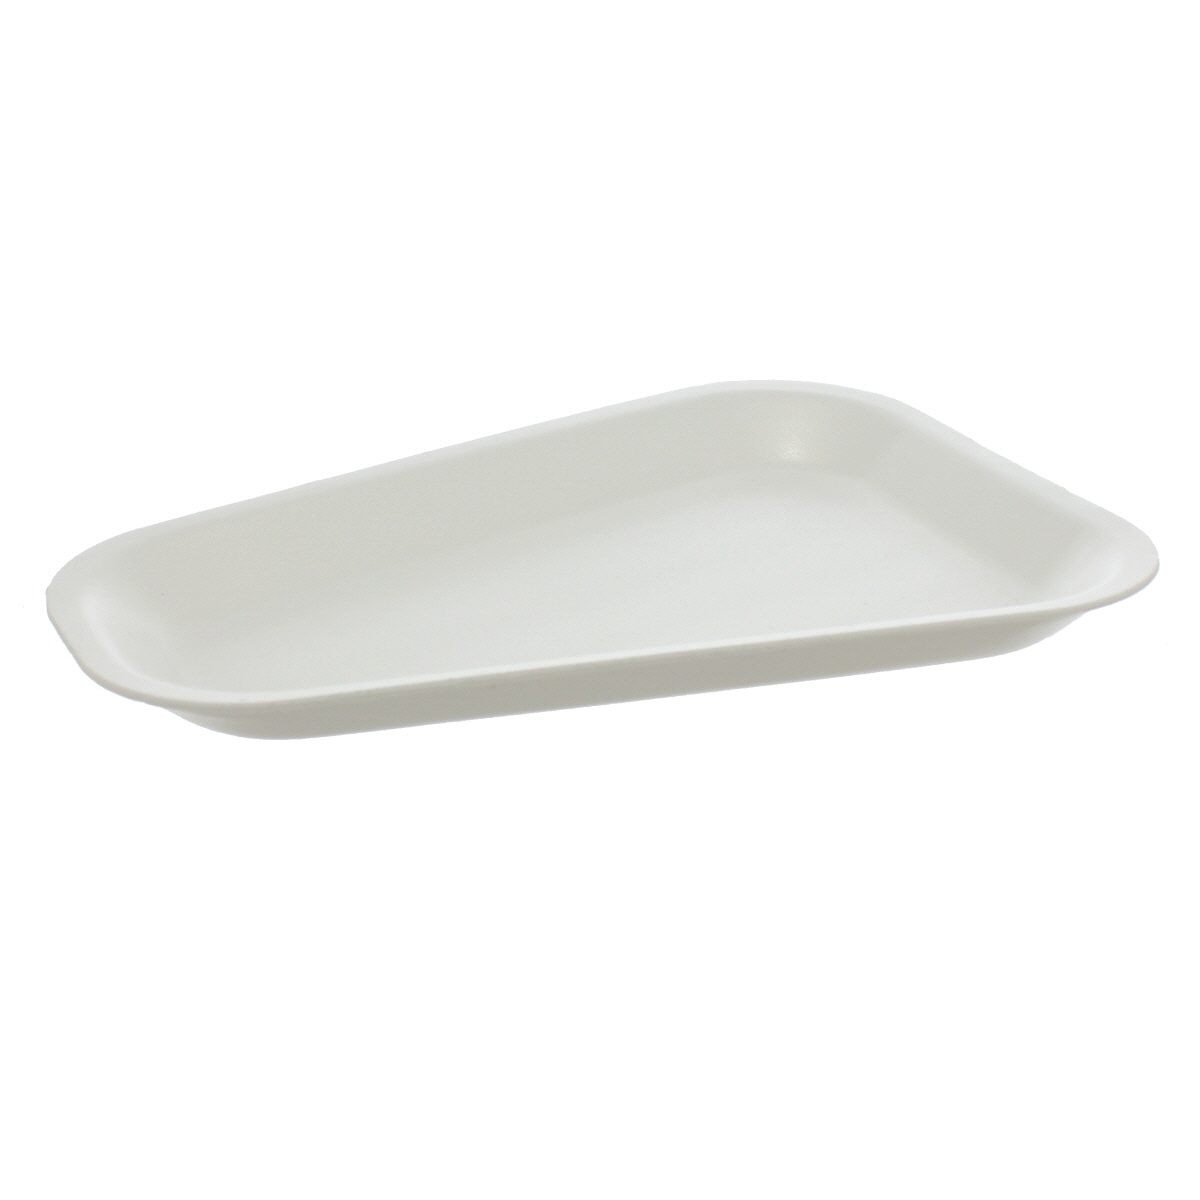 PT3 POLYSTYRENE MEAT TRAY